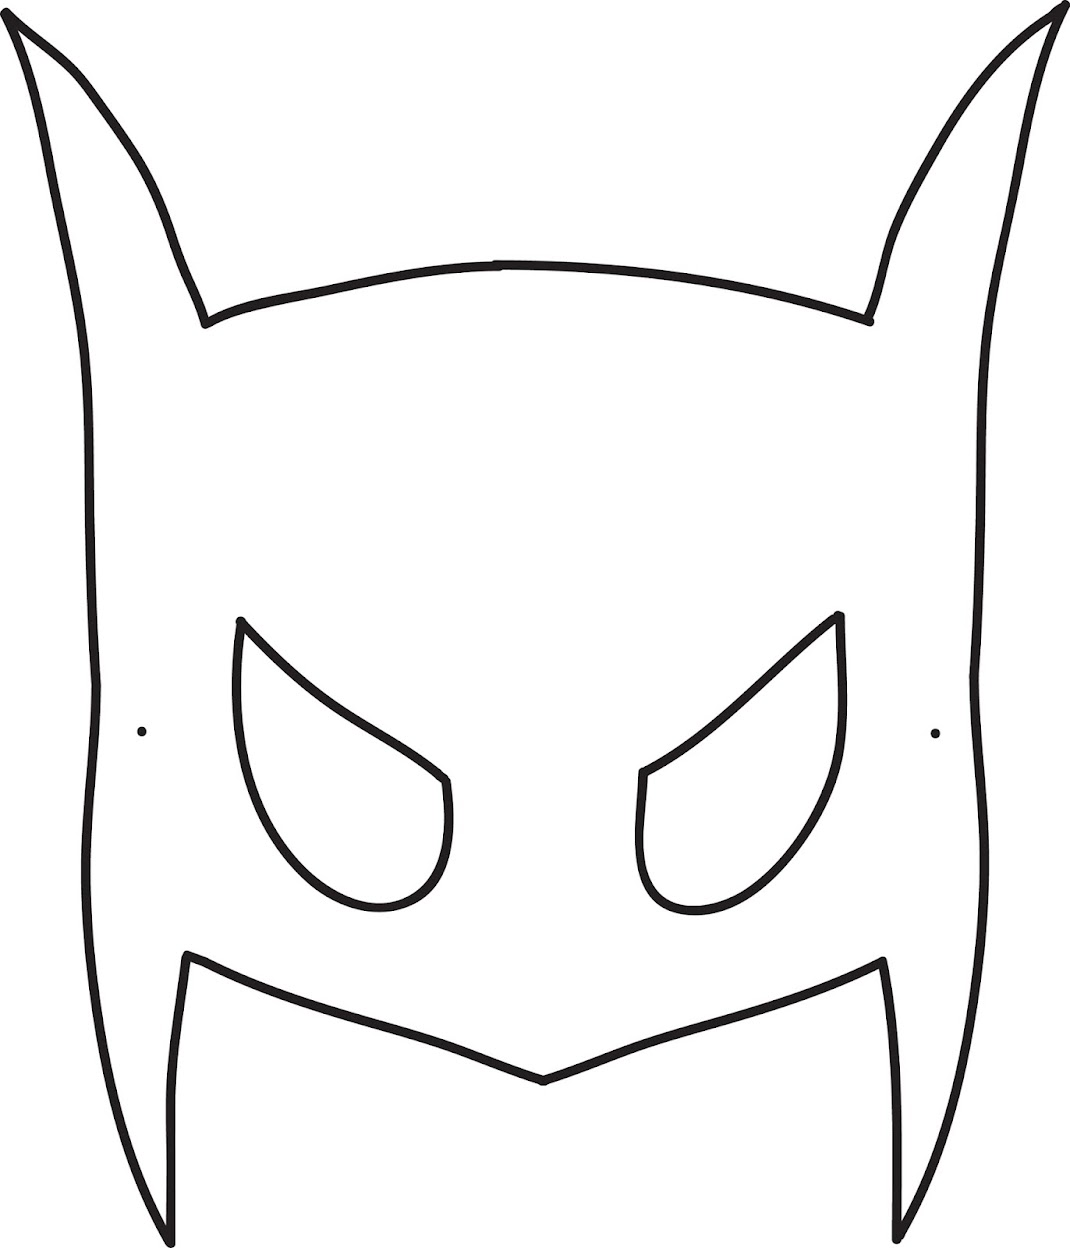 Mask templete search results calendar 2015 for Batman face mask template